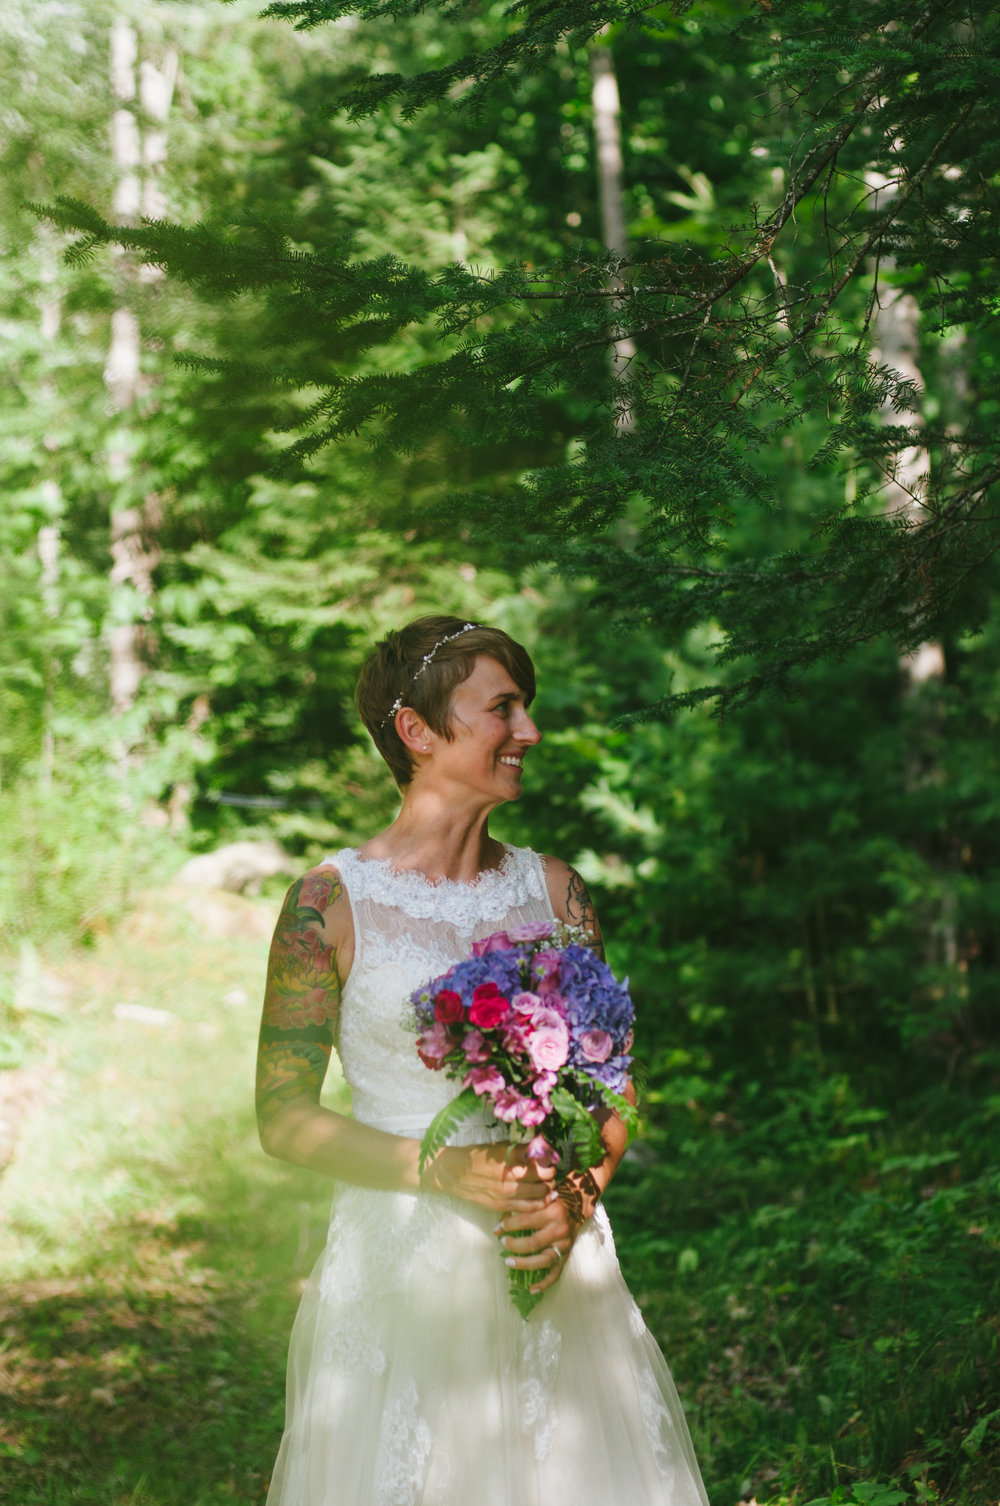 NH-Wedding-2015-2.jpg